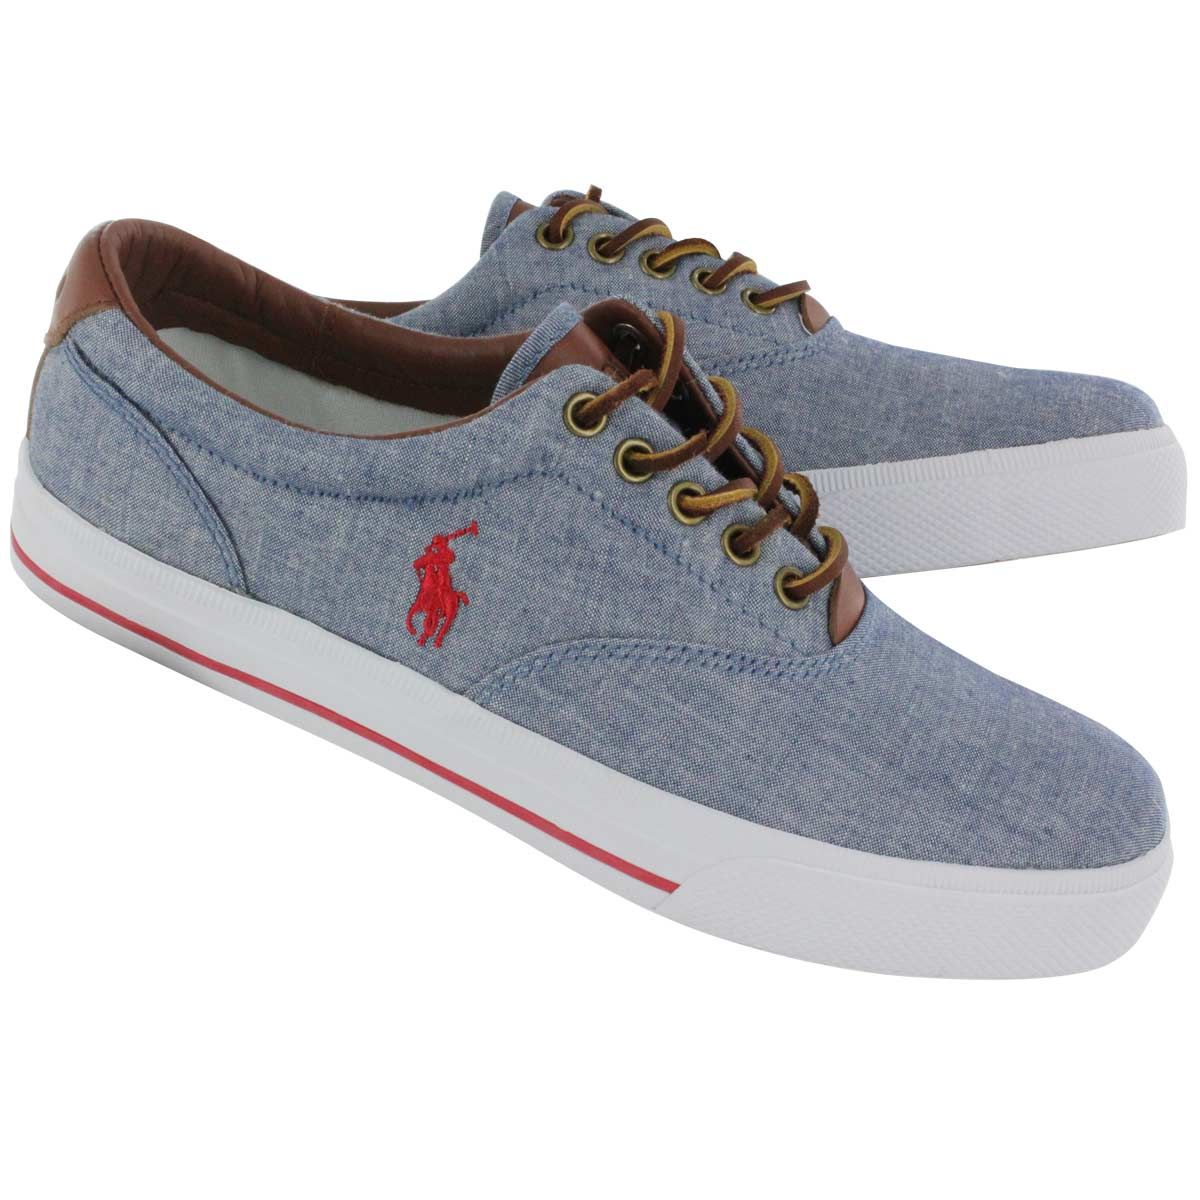 COMFORTABLE HANFORD BLUE CHAMBRAY LEATHER ITEM 75494